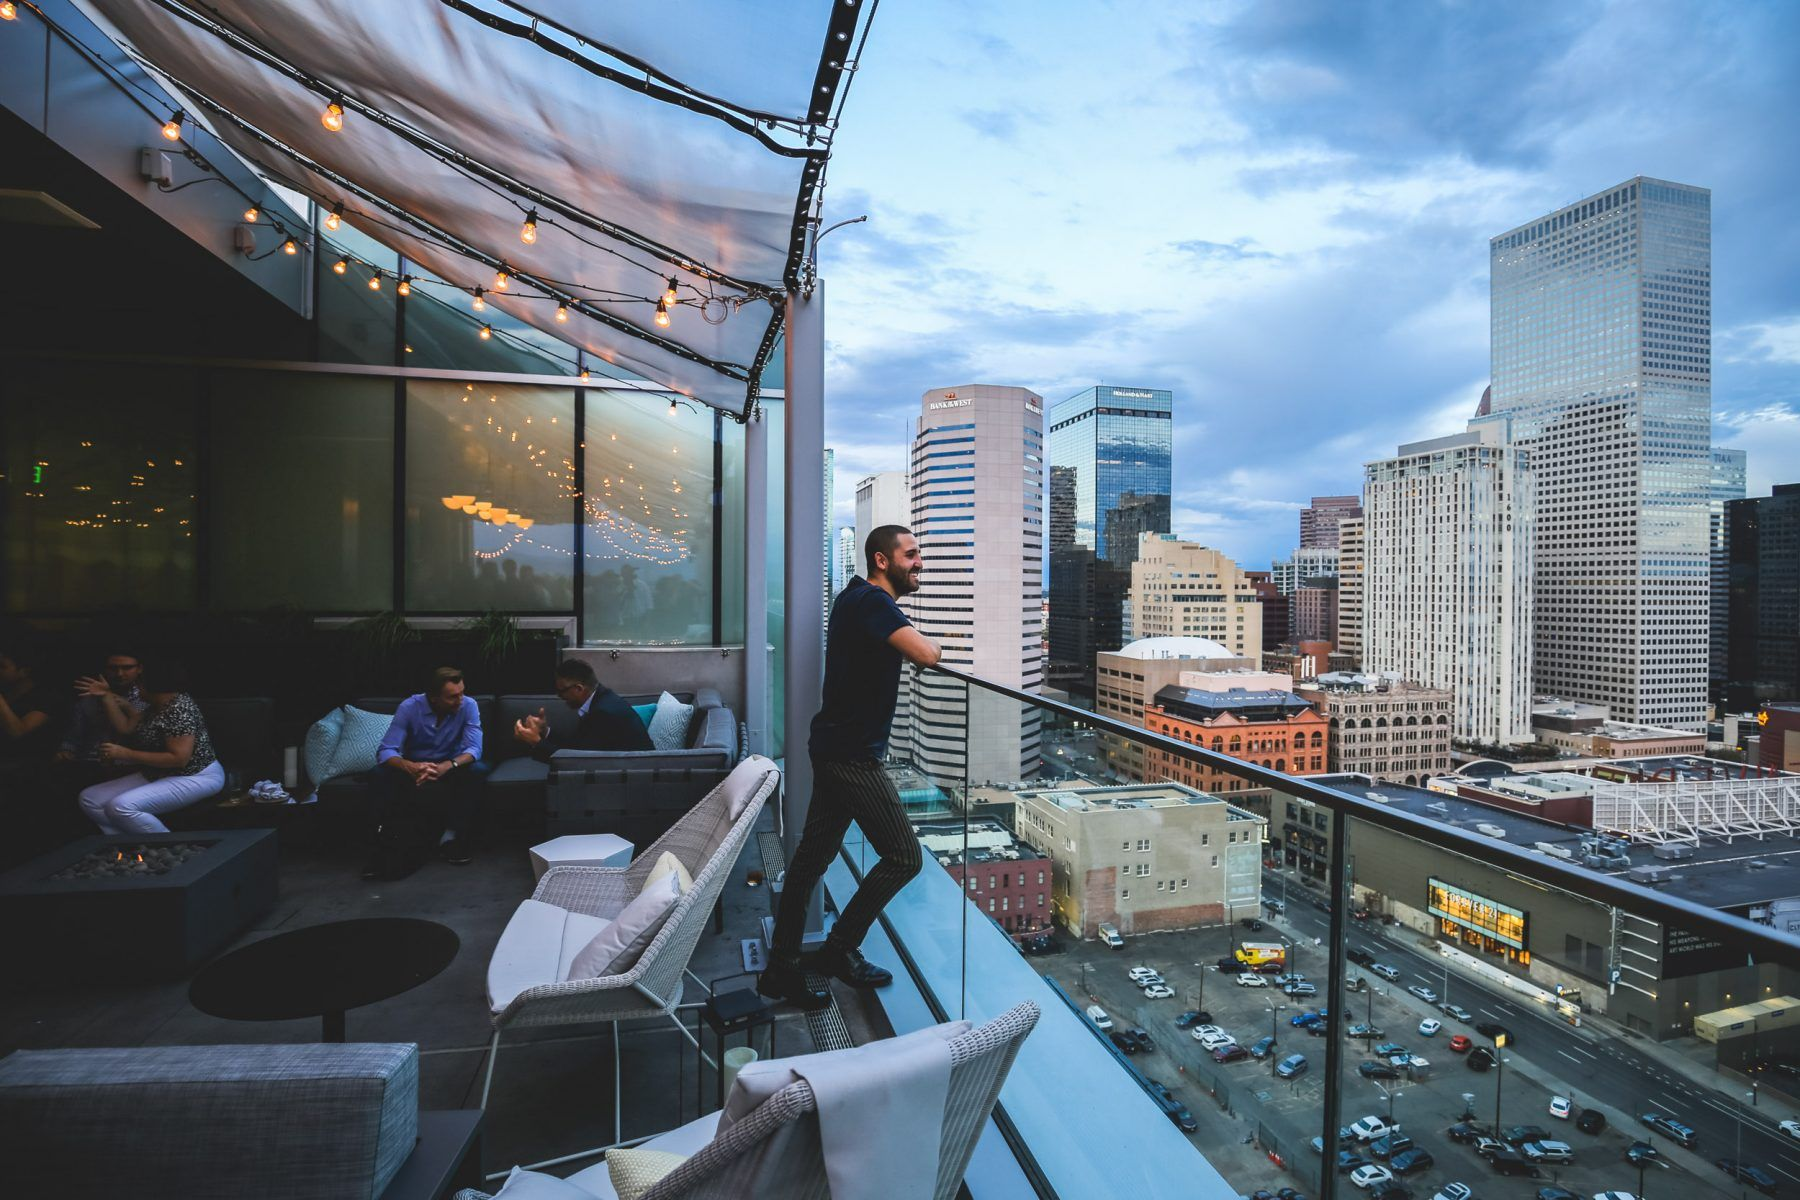 54thirty Denver S Highest Rooftop Bar Has Fire Pits To Keep Patio Season Burning Into Fall Rooftop Bar Covent Garden Rooftop